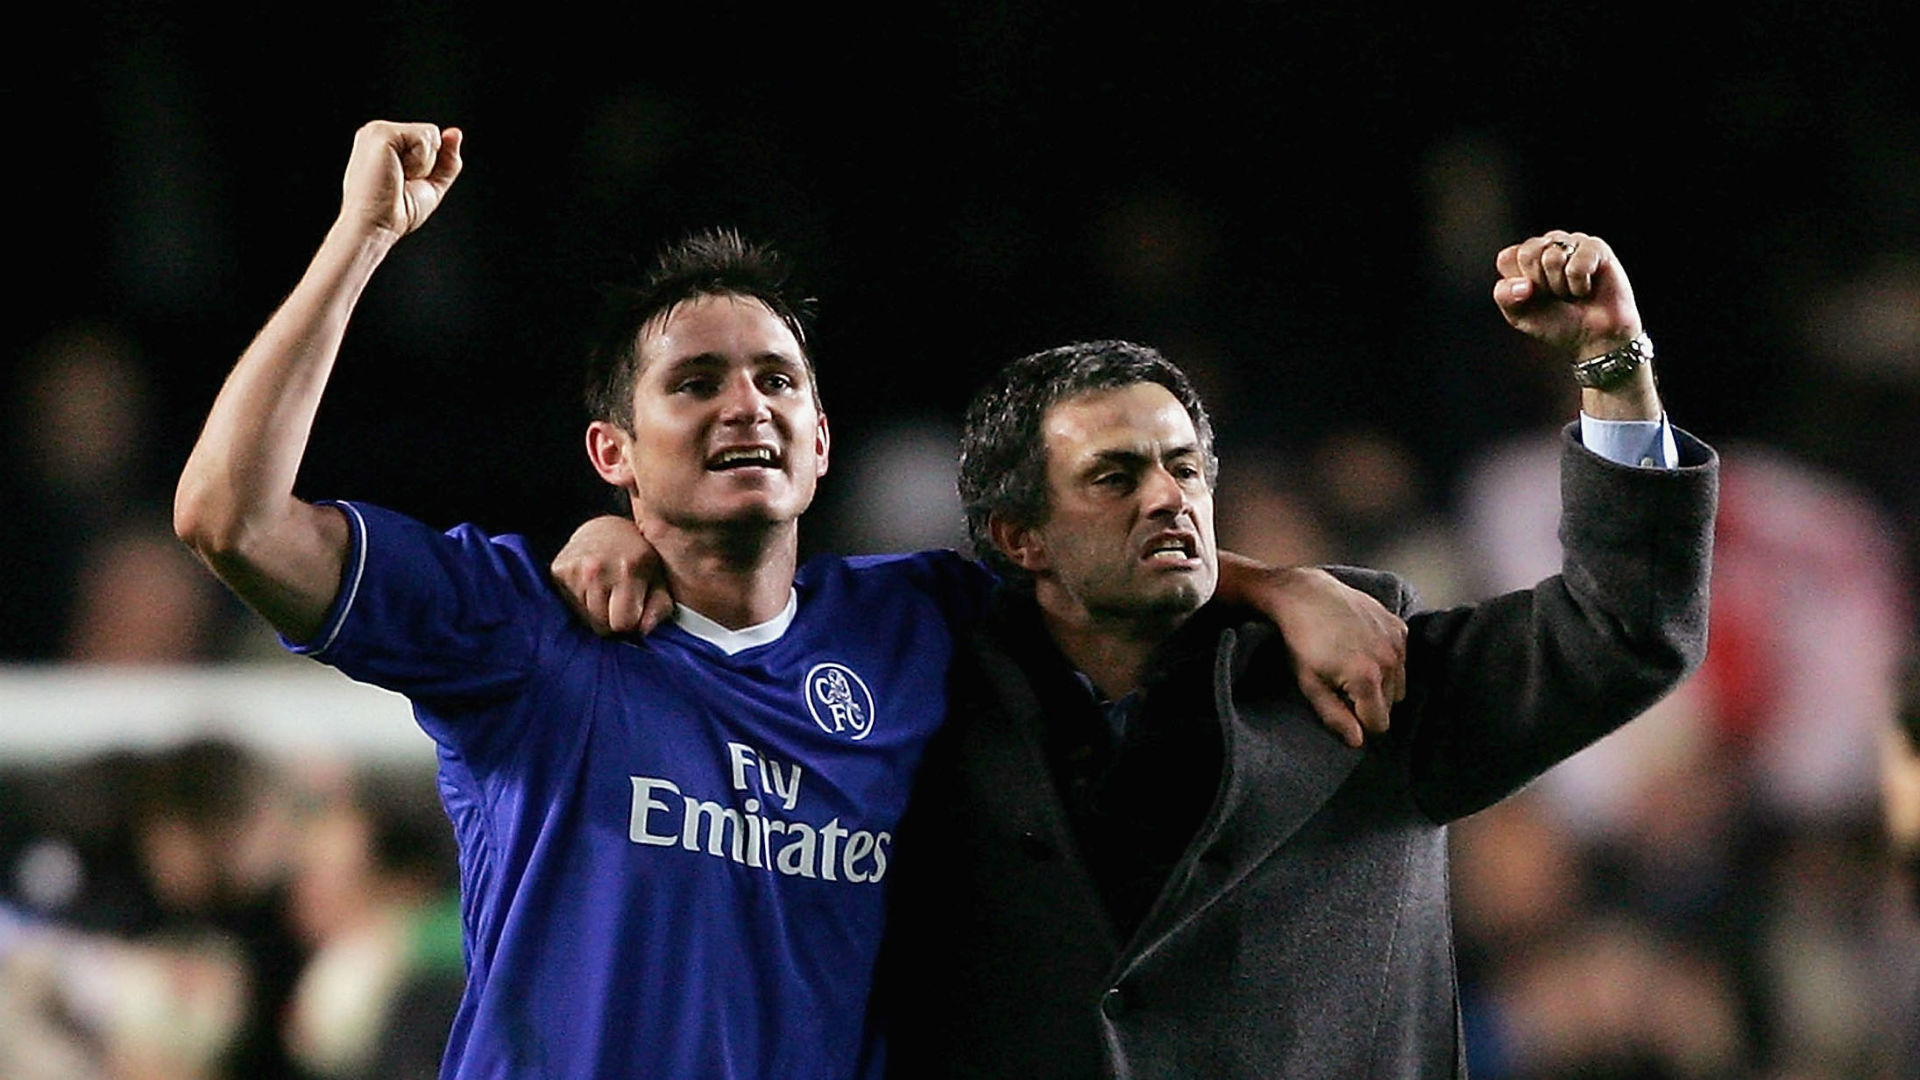 Mourinho will inspire Tottenham players, claims Lampard